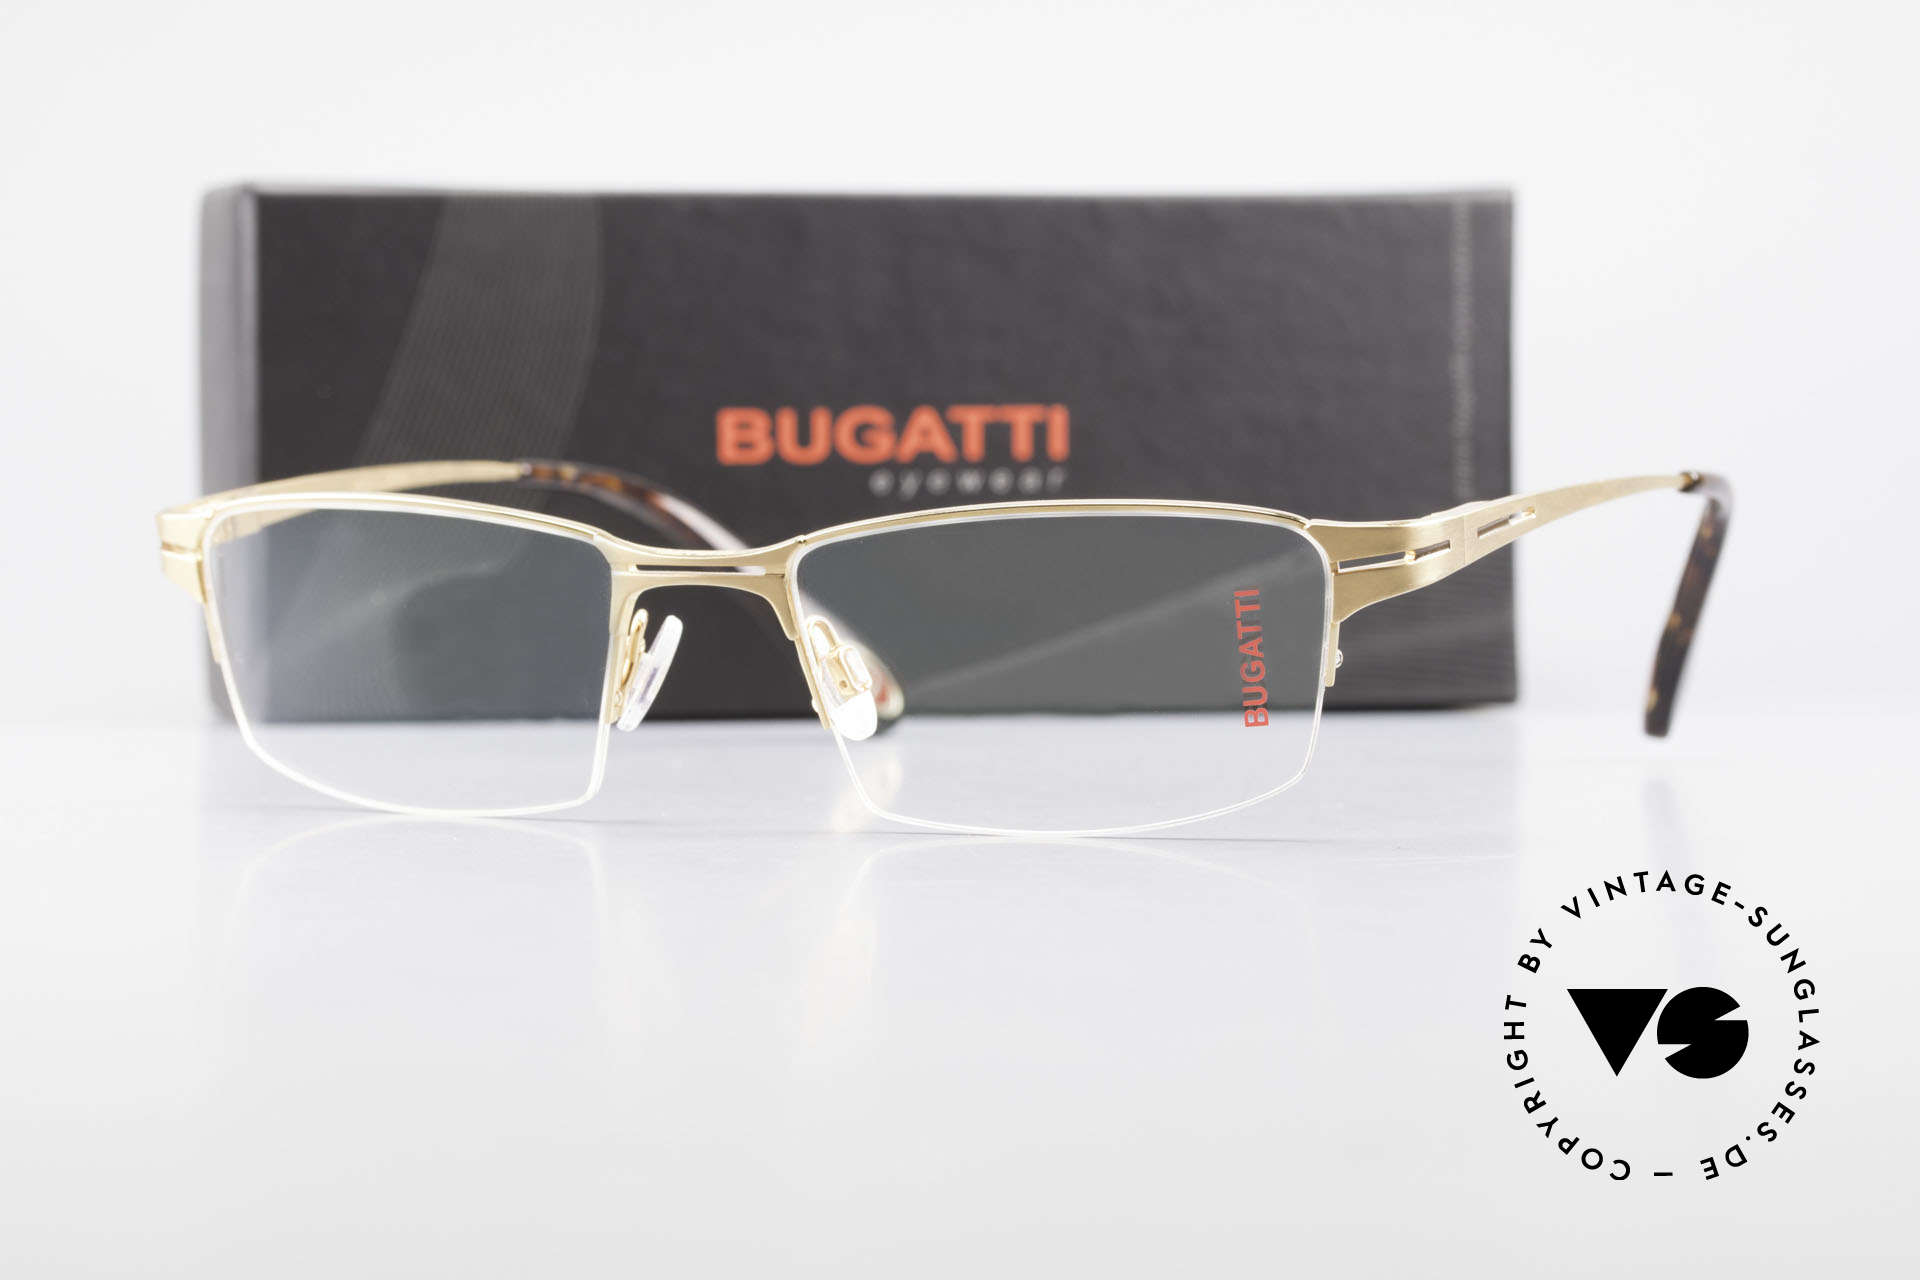 Bugatti 456 Nylor Titan Frame Gold-Plated, Size: large, Made for Men